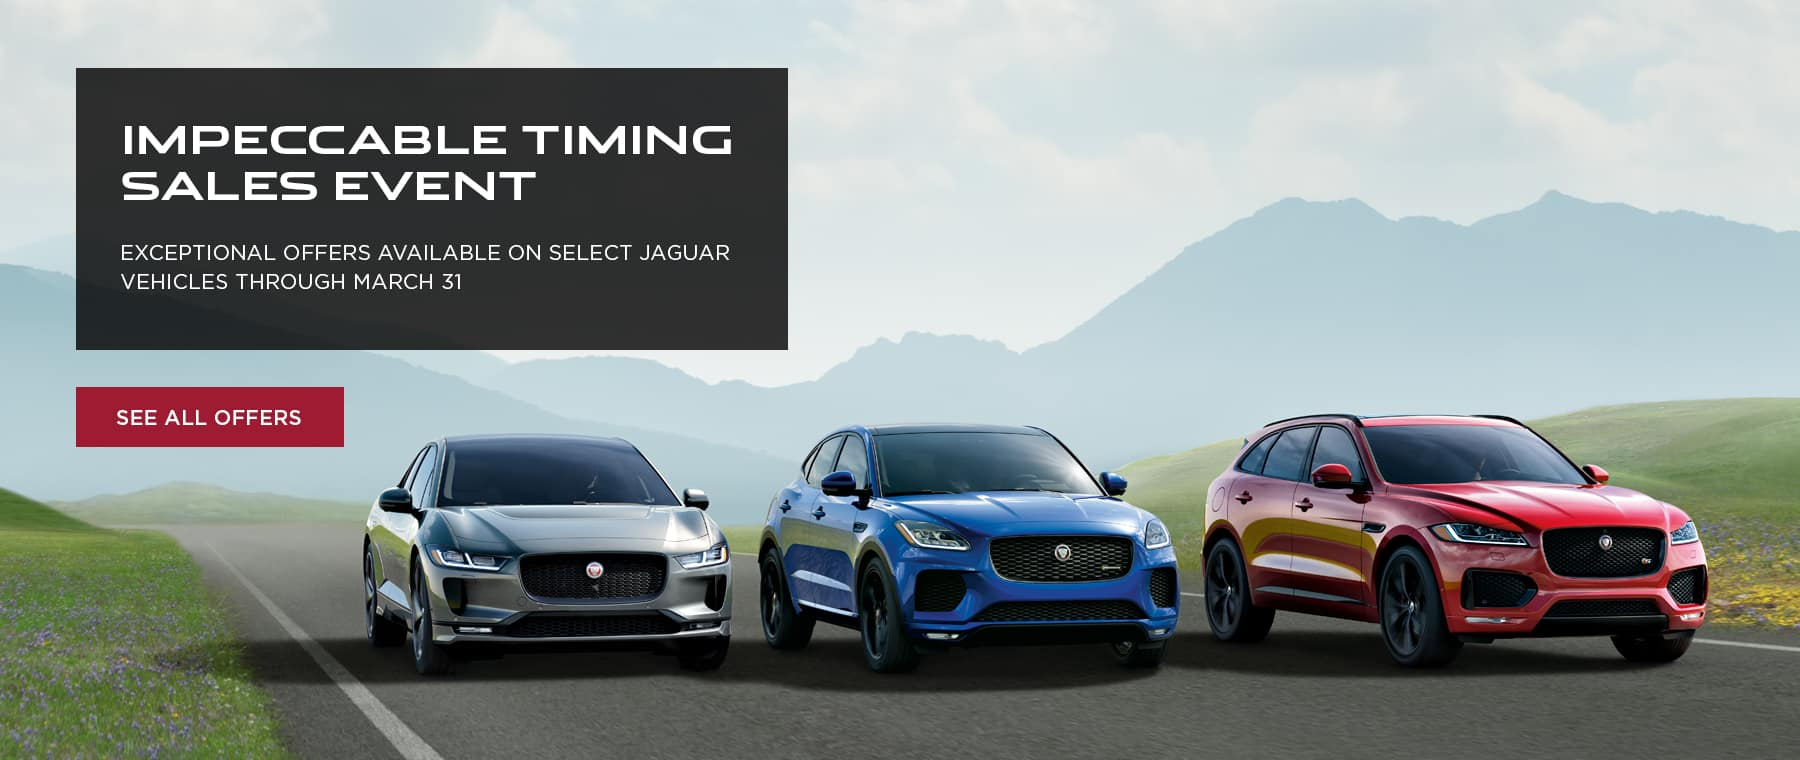 PACE FAMILY LINE UP SHOT DRIVING DOWN ROAD WITH GRASS AND MOUNTAINS IN THE BACKGROUND. IMPECCABLE TIMING SALES EVENT. EXCEPTIONAL OFFERS AVAILABLE ON SELECT JAGUAR VEHICLES THROUGH MARCH 31. SEE ALL OFFERS.